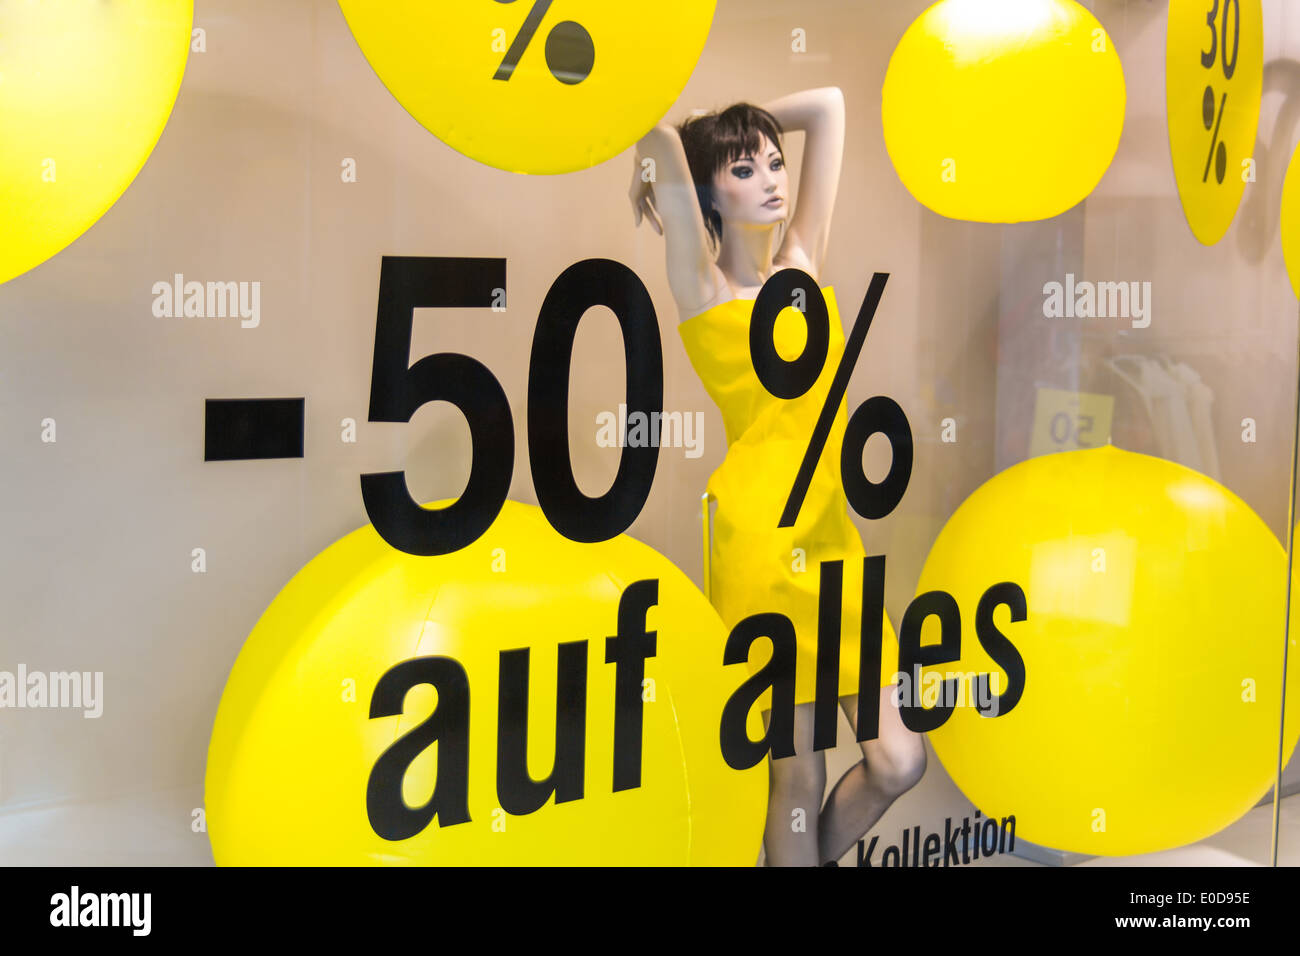 Retail trade, price reduction in percent, symbolic photo for cheap prices, Marketung and competition, Einzelhandel, Preissenkung - Stock Image